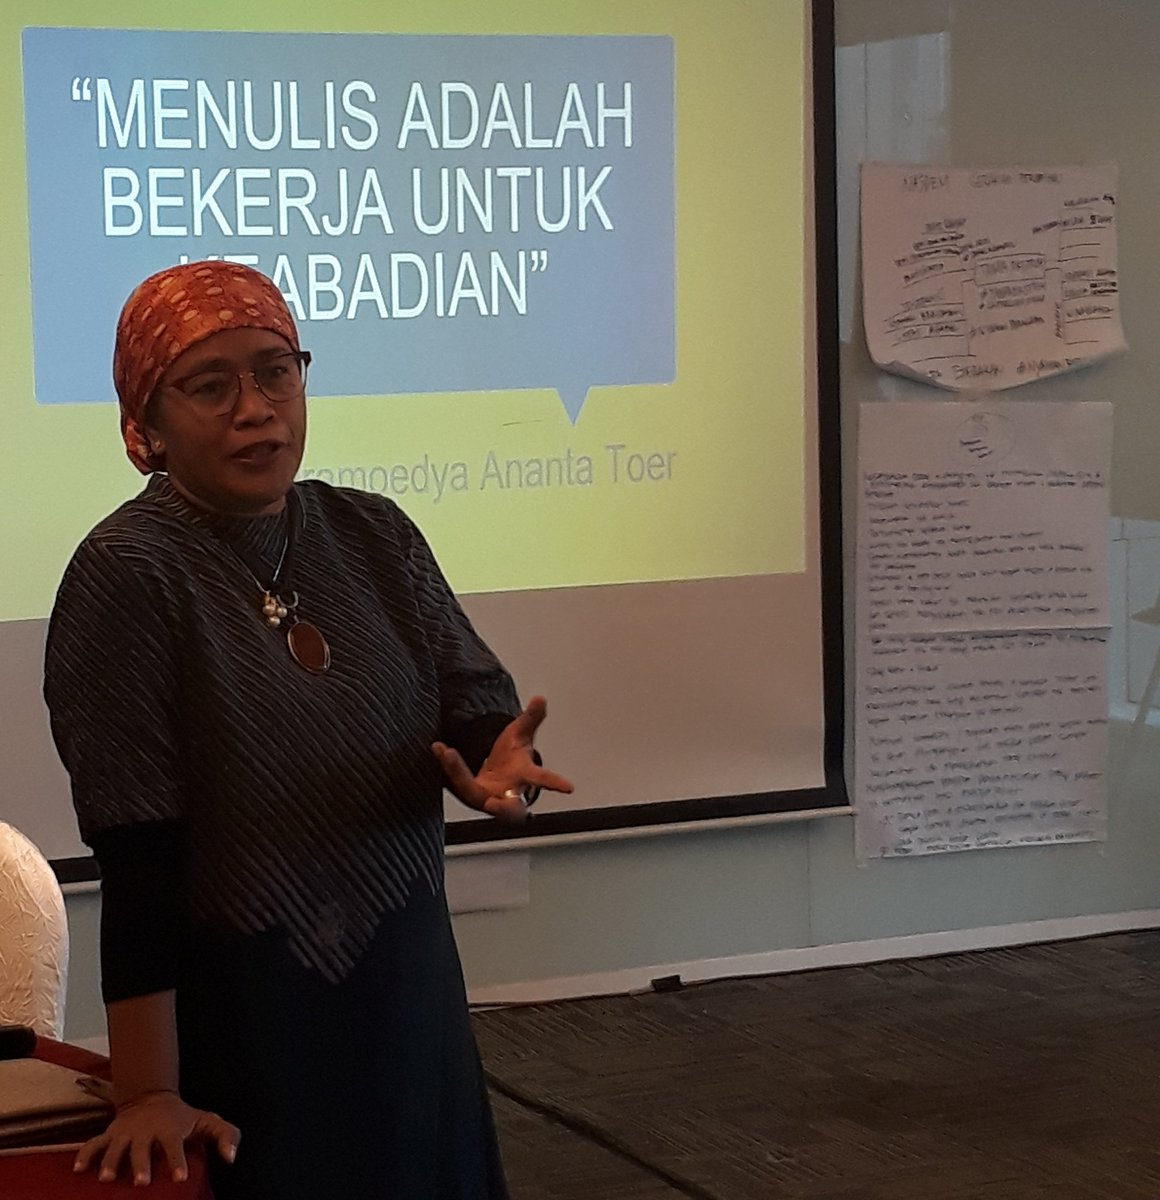 The last session of the 2nd day. BONUS: Tips on writing op-ed in mainstream media. Learning from the expert @MardiyahChamim of @TempoInstitute  #INSPIRE #InterParty #Dialogue #Democracy #Representation   @kemitraan_ind @WeAreNIMD @MonicaTanuhanda @NLinIndonesia<br>http://pic.twitter.com/k2uKbJZoCe